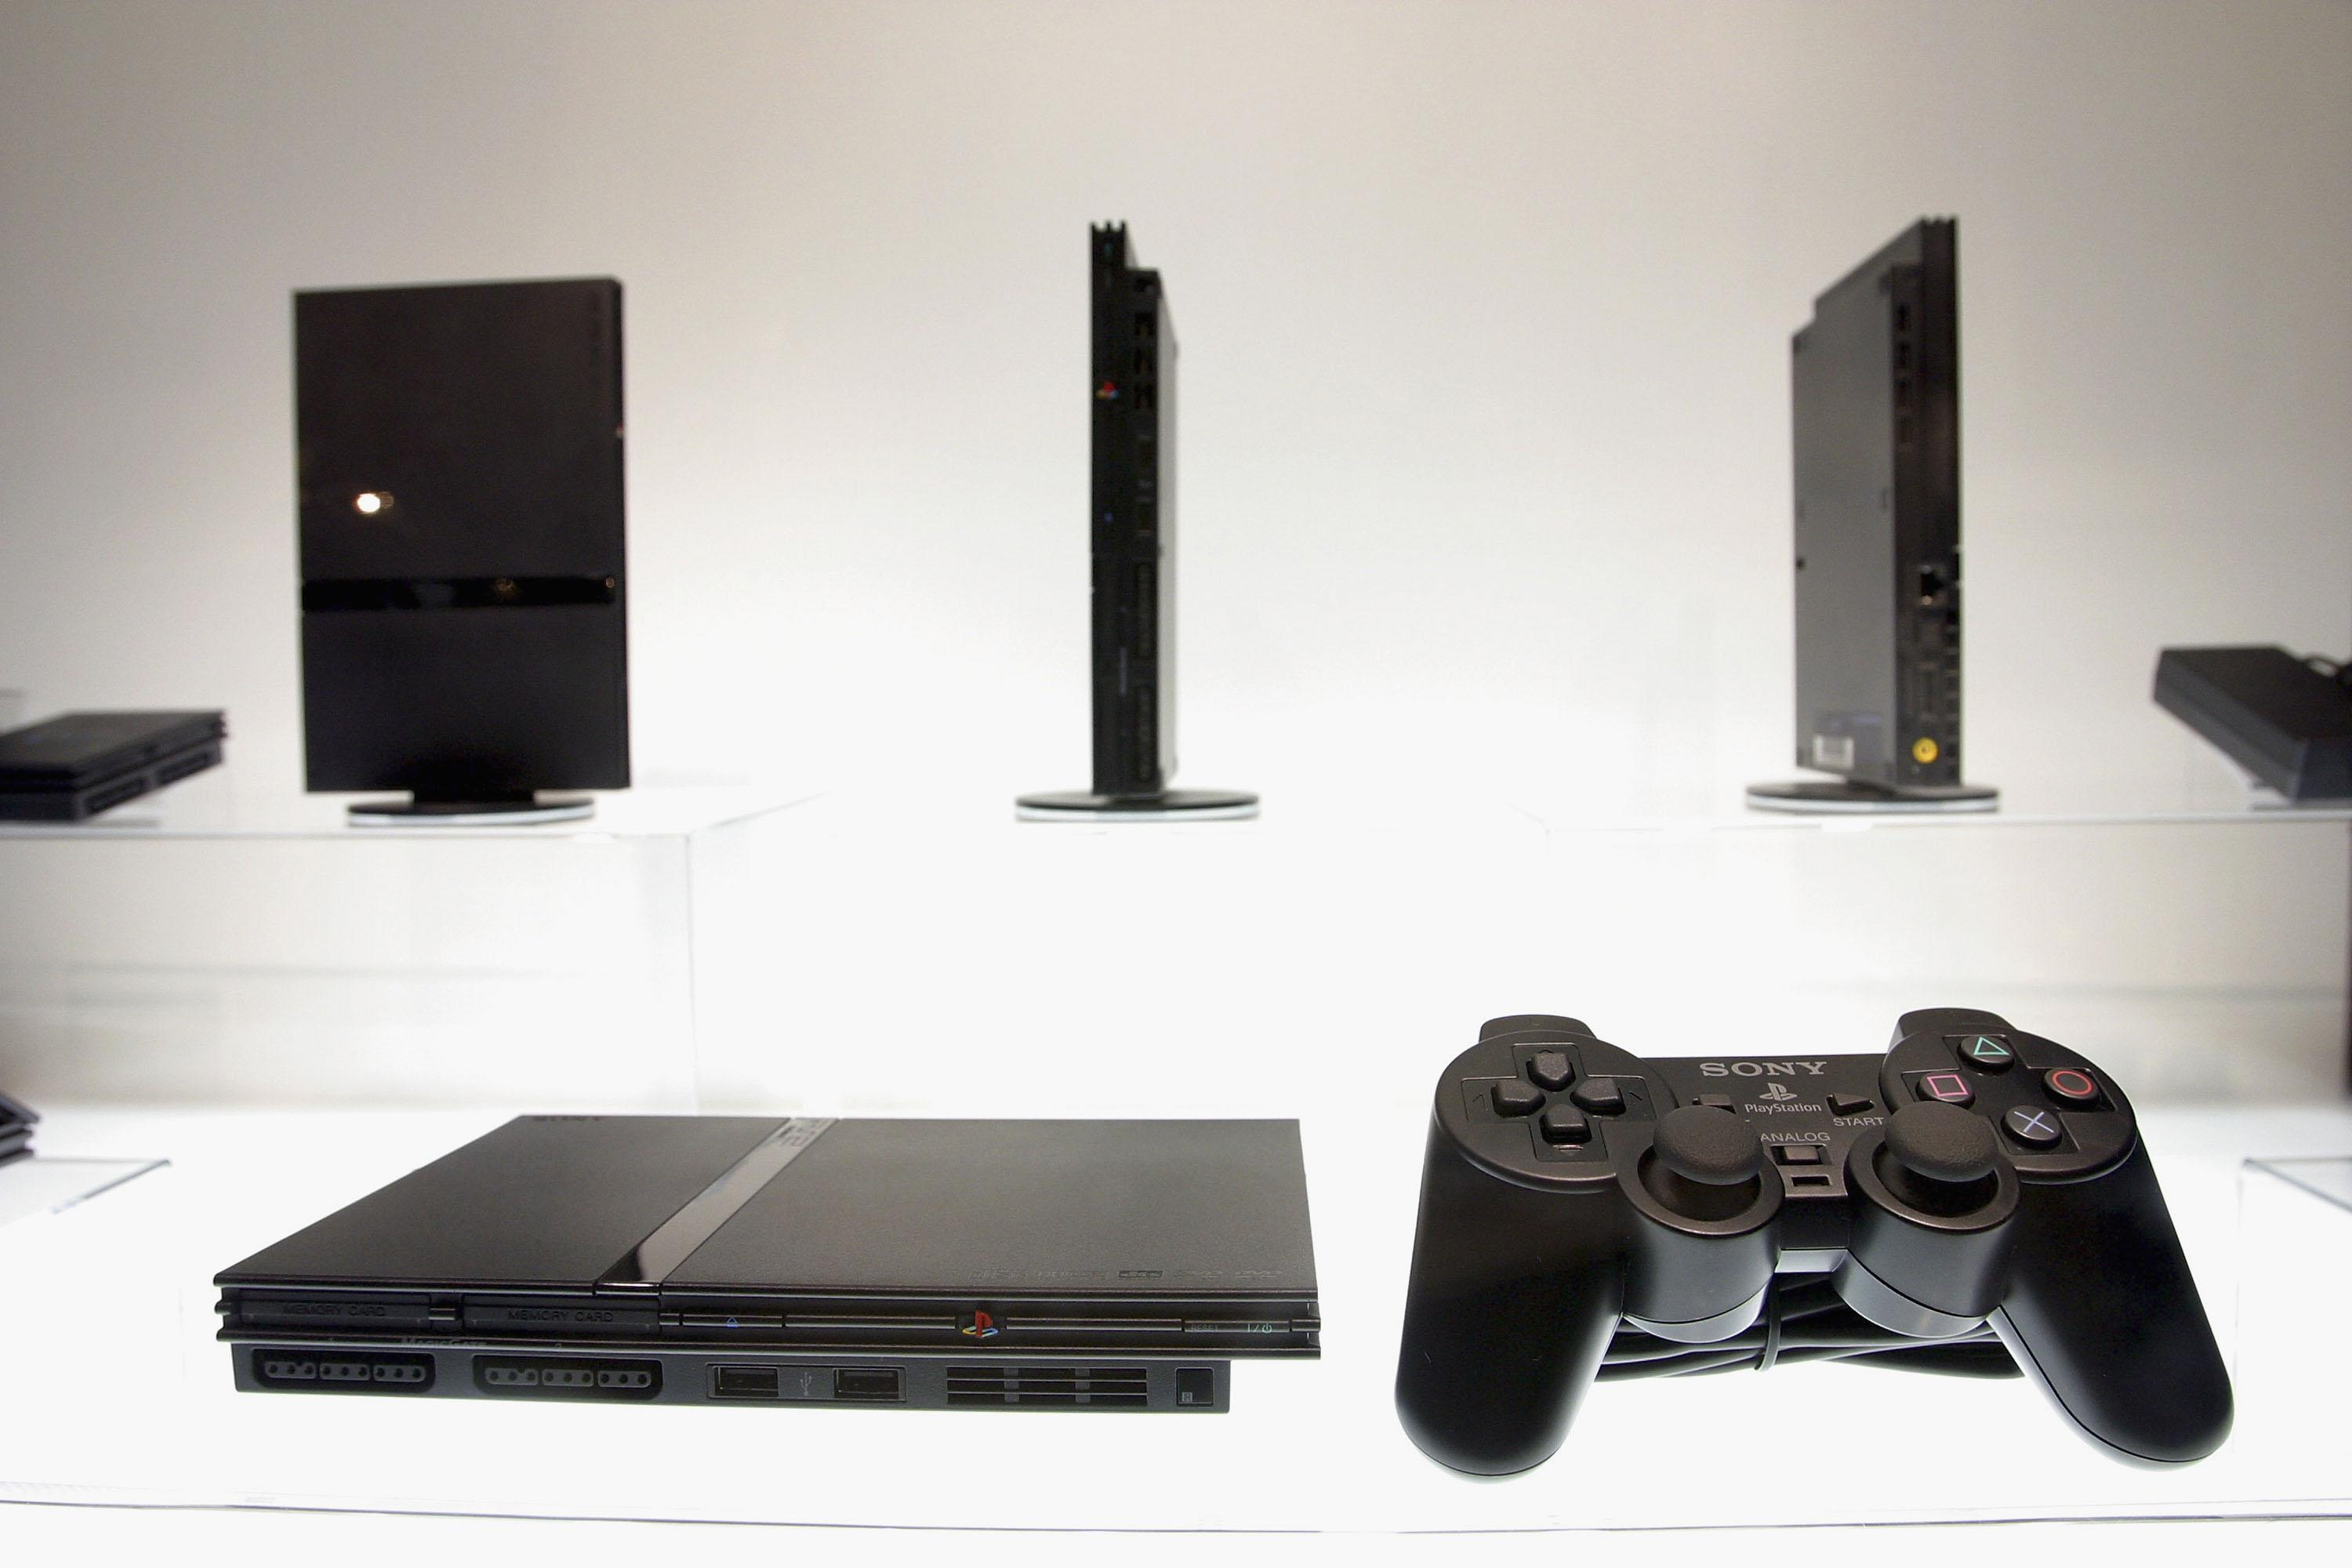 PlayStation 2 can play homebrew games by using DVD player exploits | Engadget